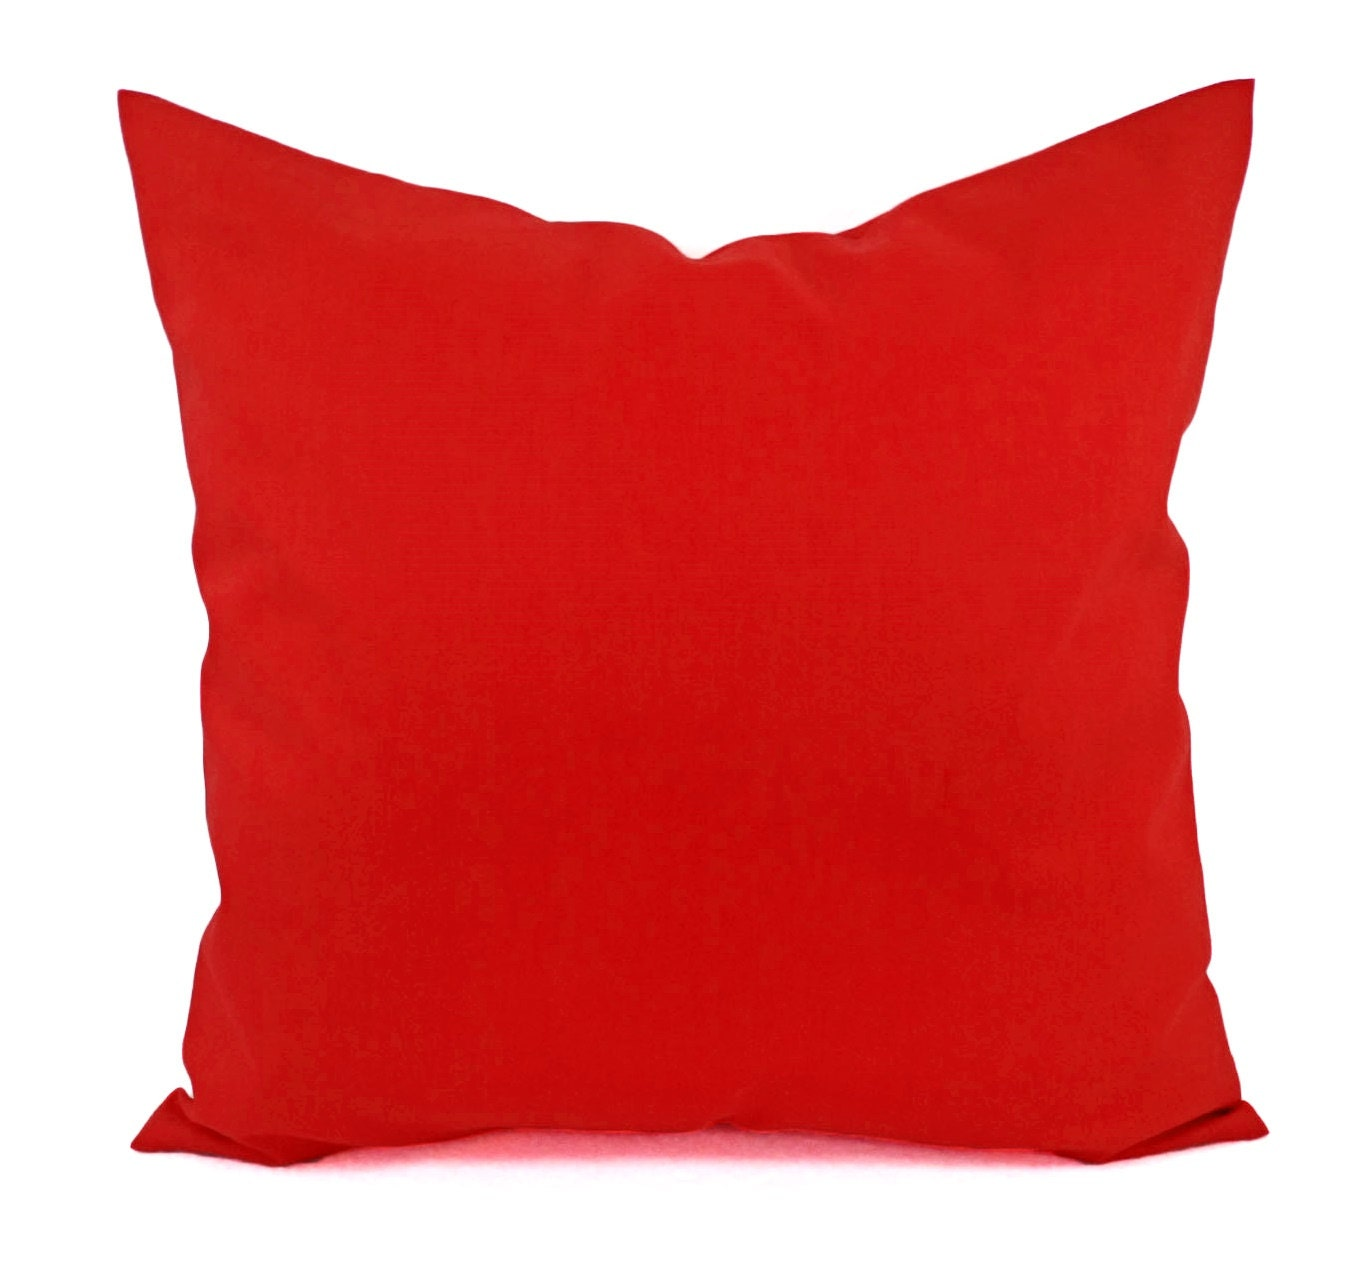 Solid Red Pillow Cover Red Decorative Pillow Cover Linen